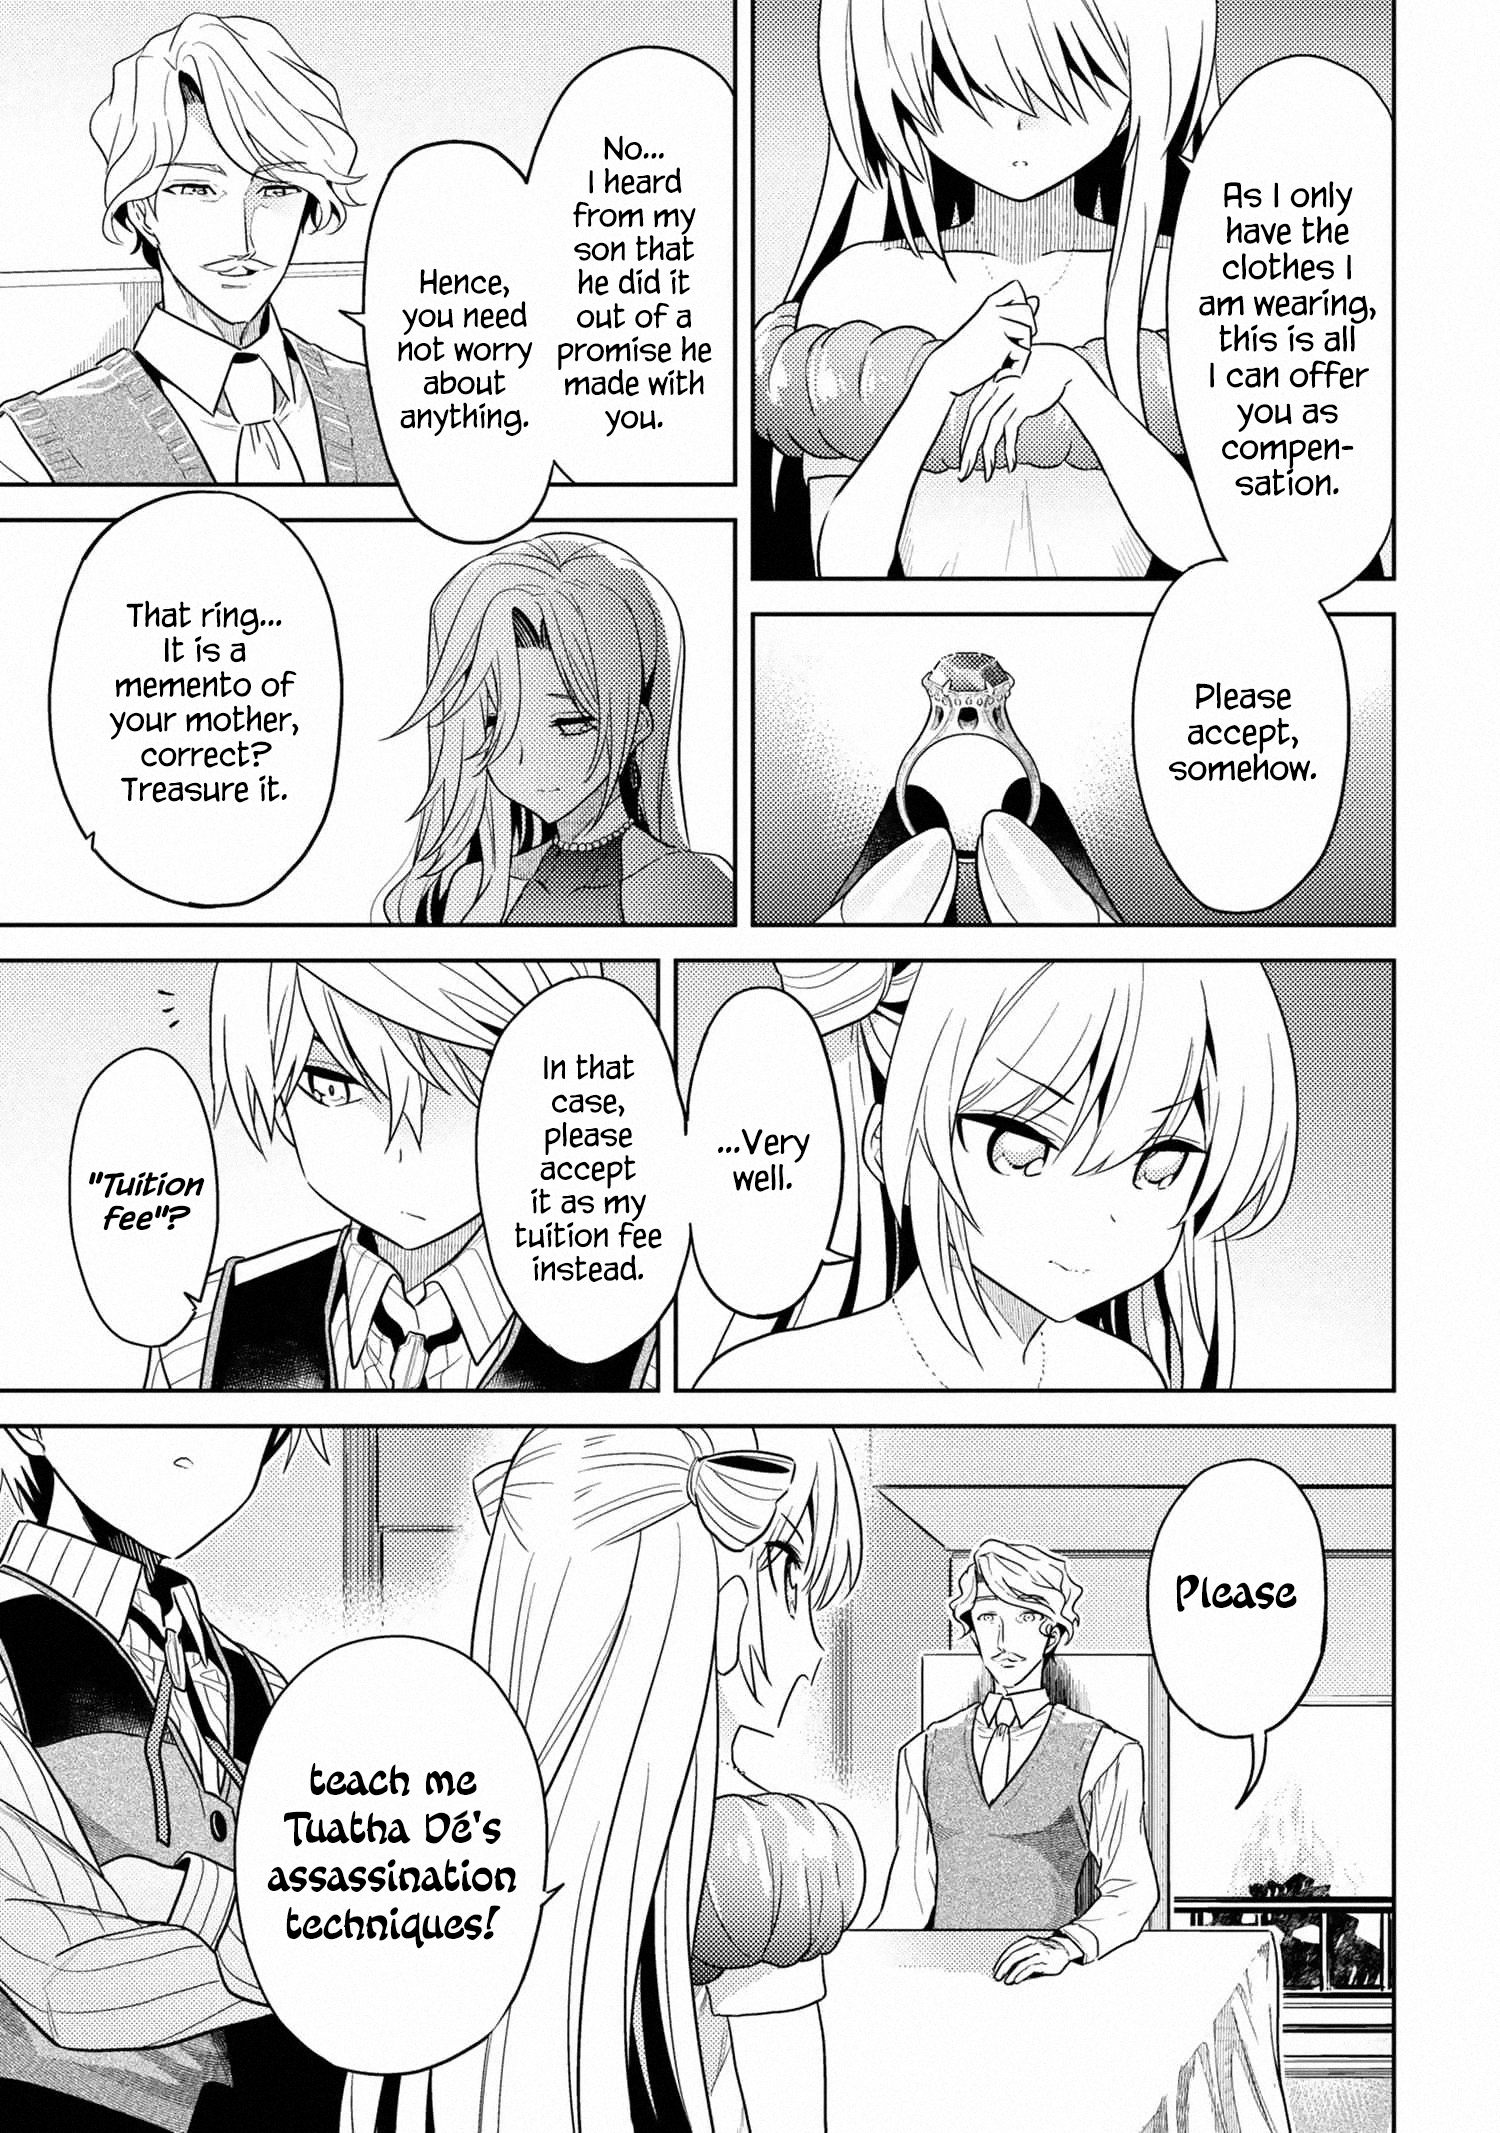 Manga The World's Best Assassin, Reincarnated in a Different World as an Aristocrat - Chapter 10 Page 13